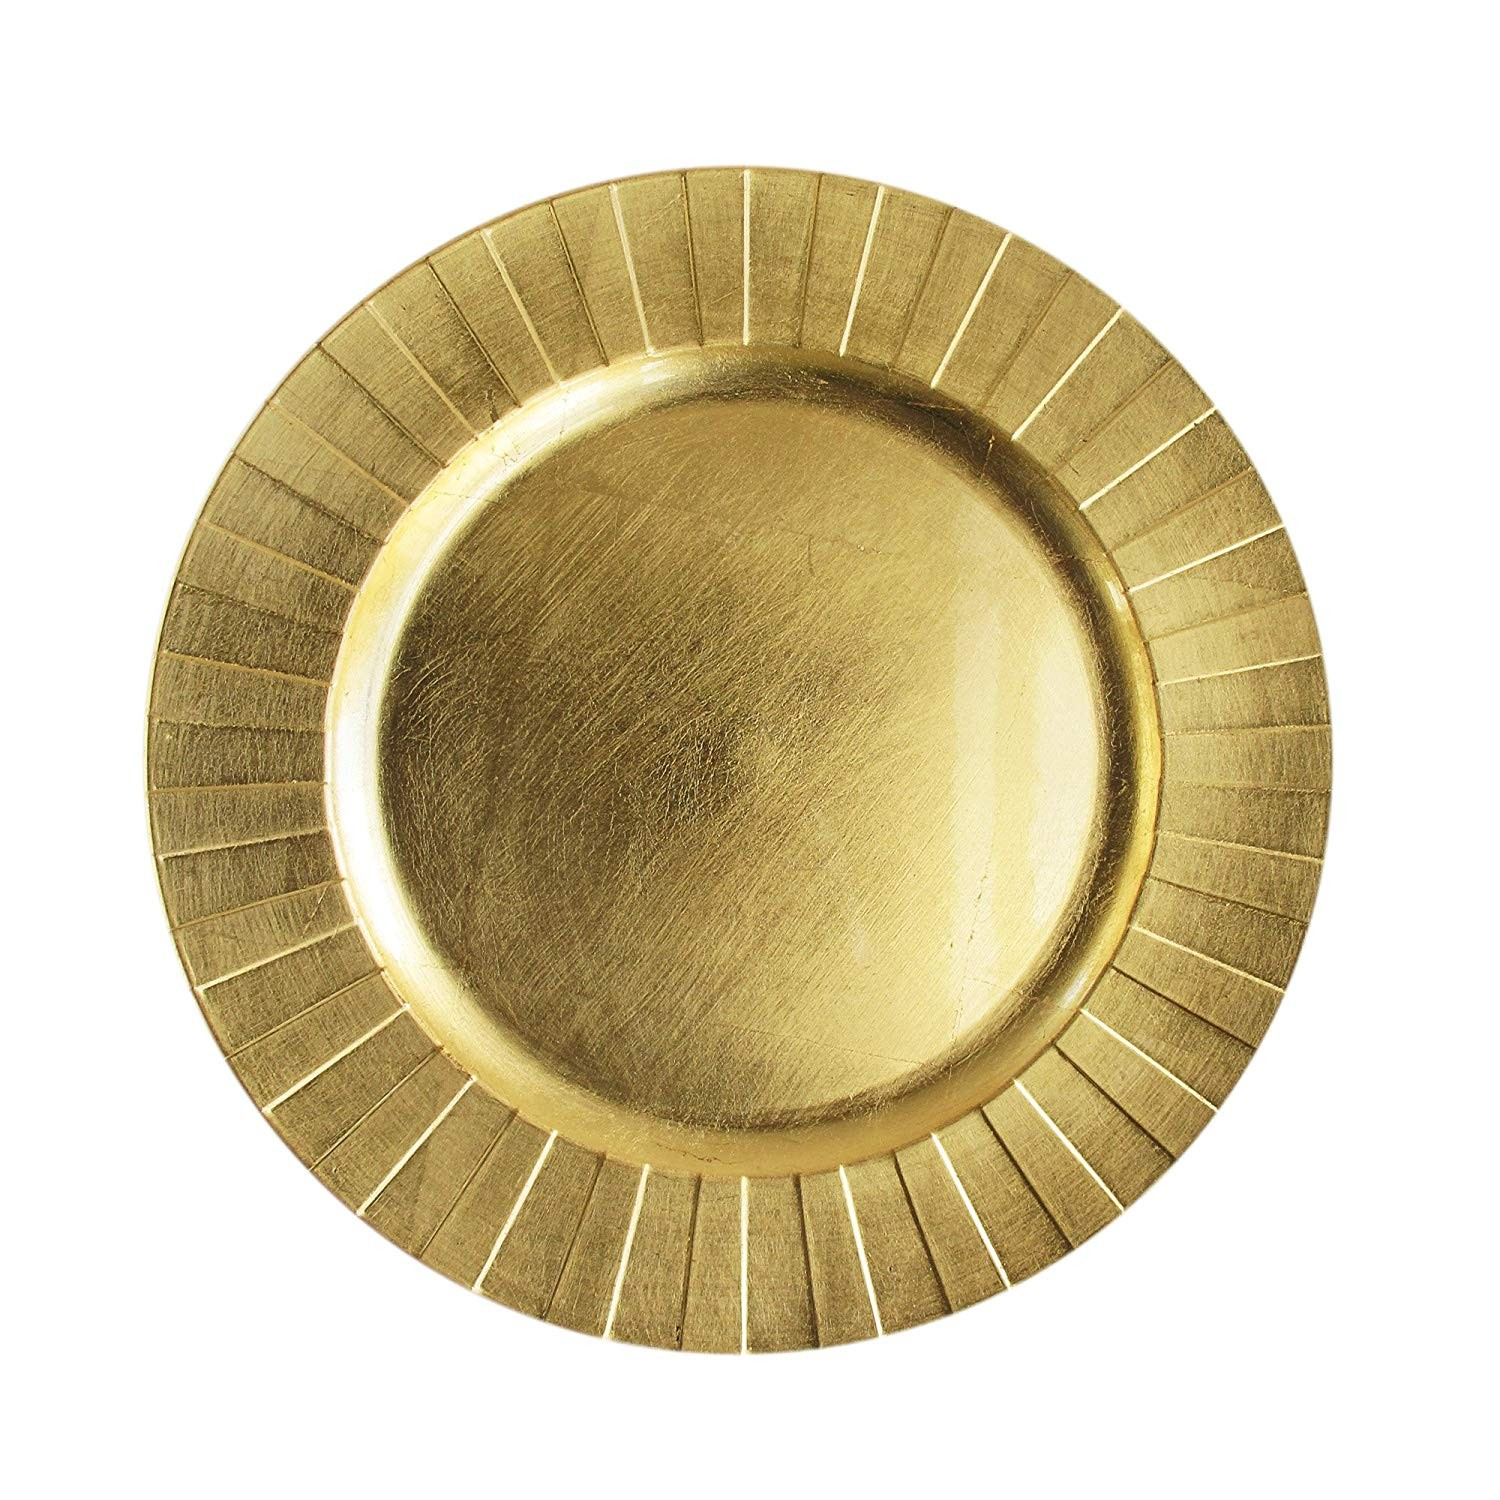 ChargeIt by Jay 1182772 Accent Rim Charger Plate, Gold